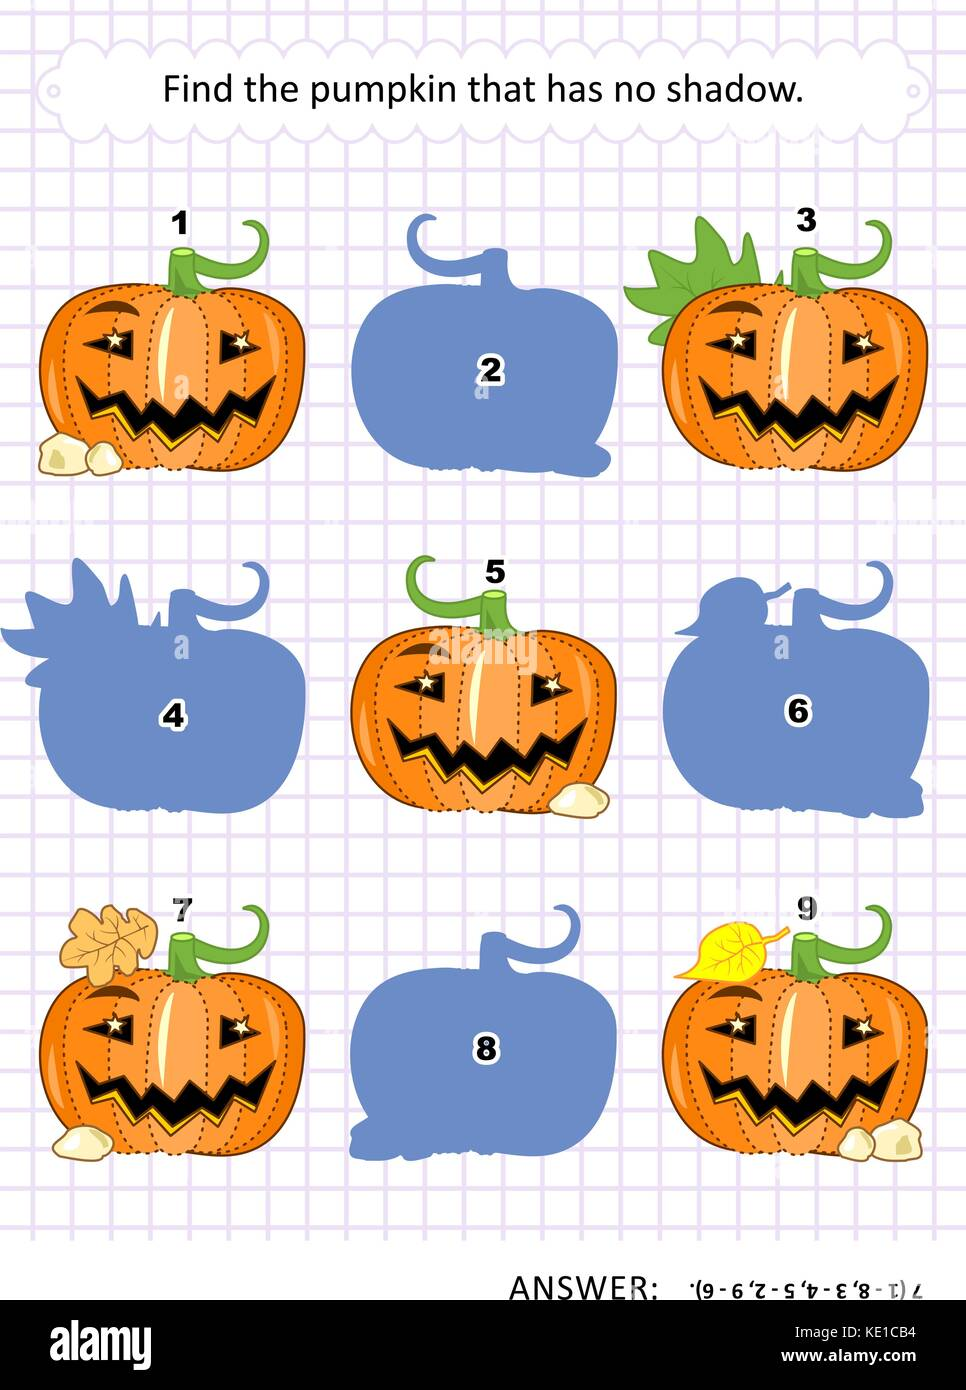 Halloween themed visual puzzle or picture riddle: Find the pumpkin that has no shadow. Answer included. - Stock Image